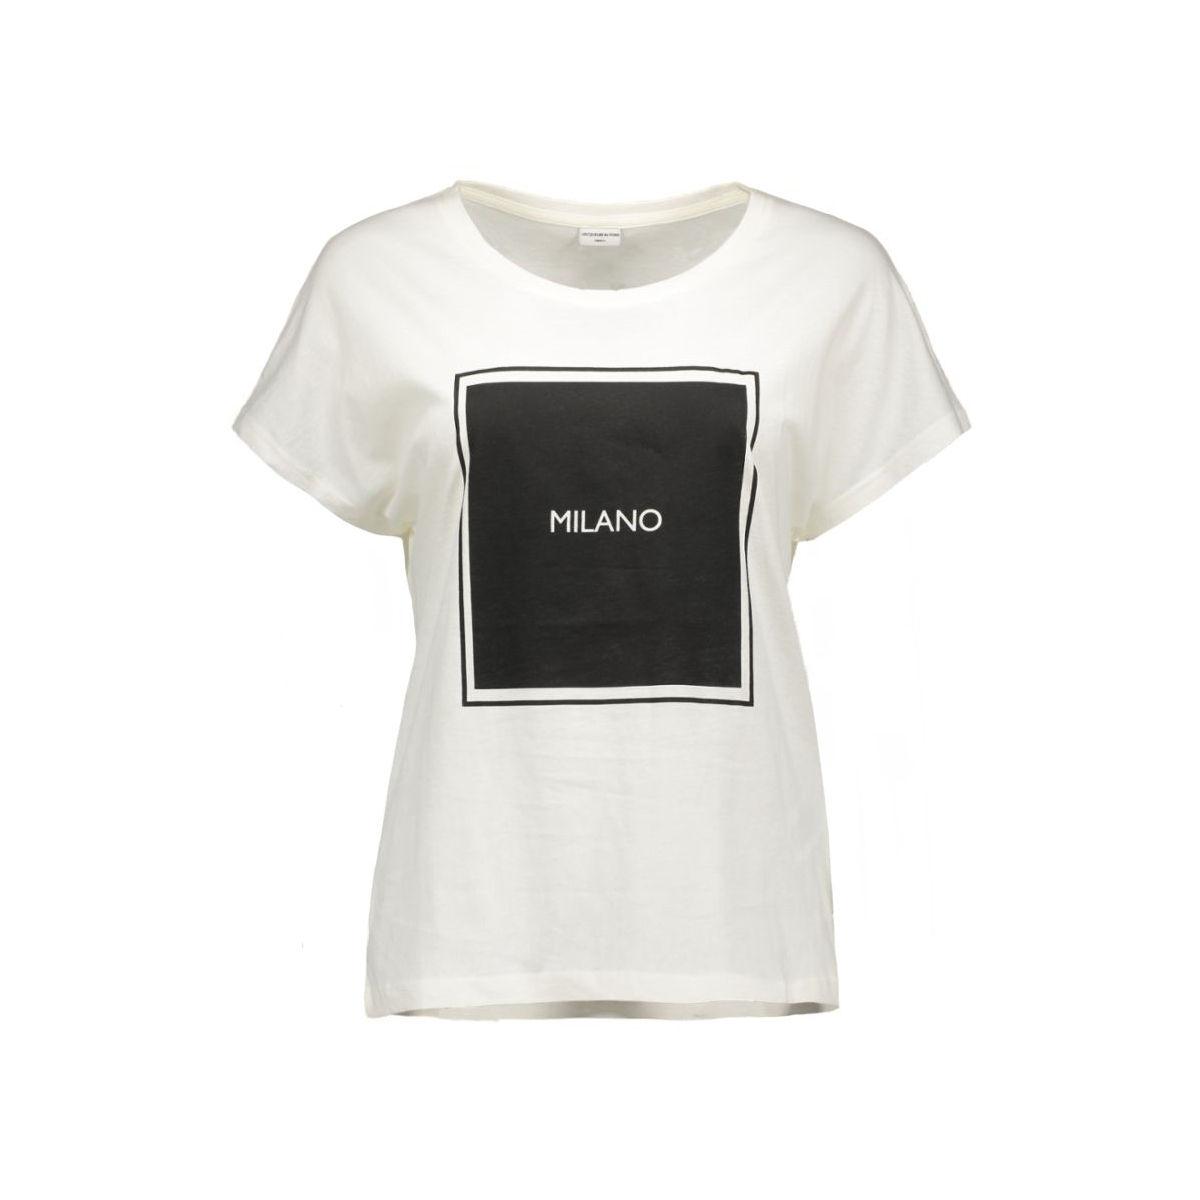 jdynora s/s top jrs 15120277 jacqueline de yong t-shirt cloud dancer/milano